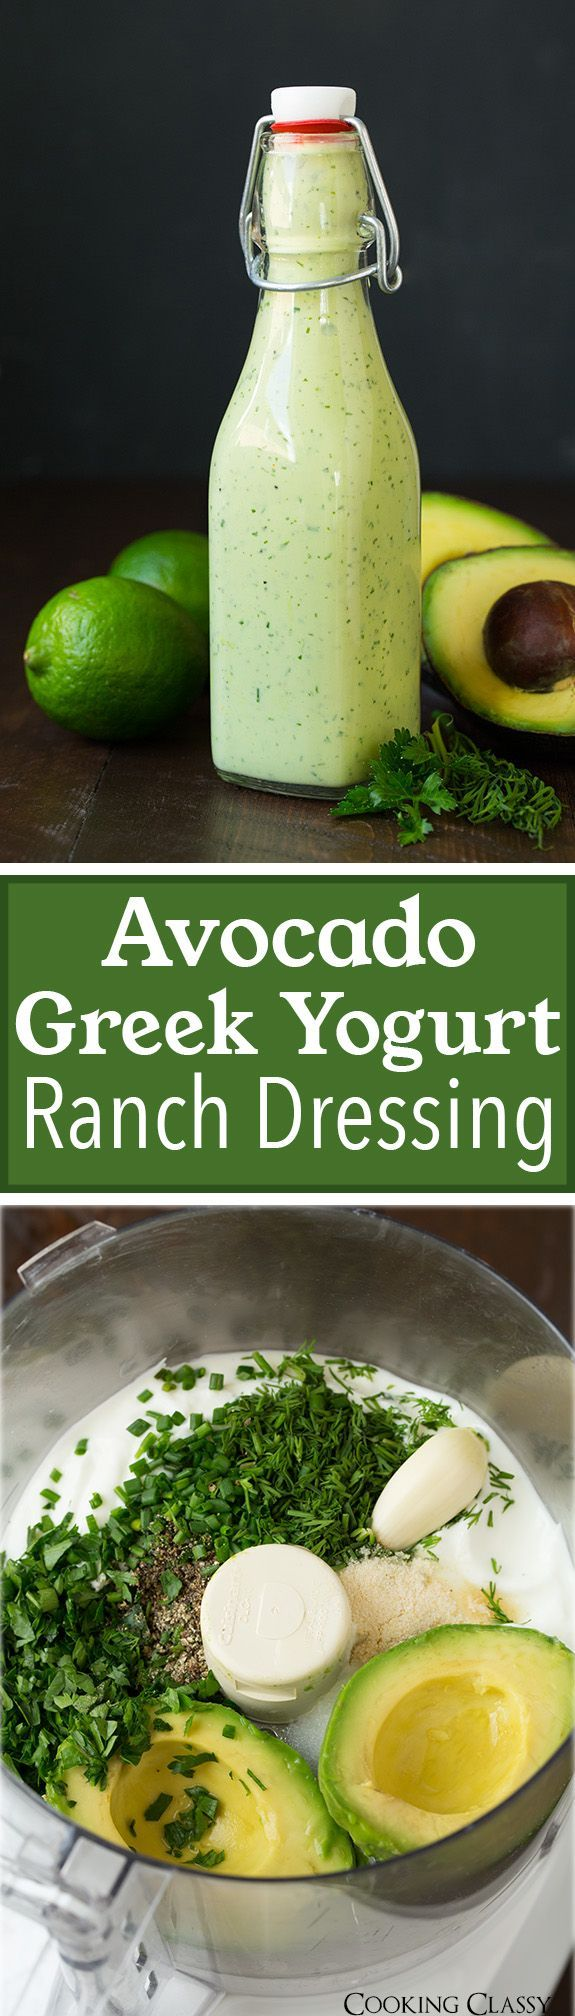 Avocado Greek Yogurt Ranch Dressing – easy, made from scratch and so delicious!! Can be used as a veggie d